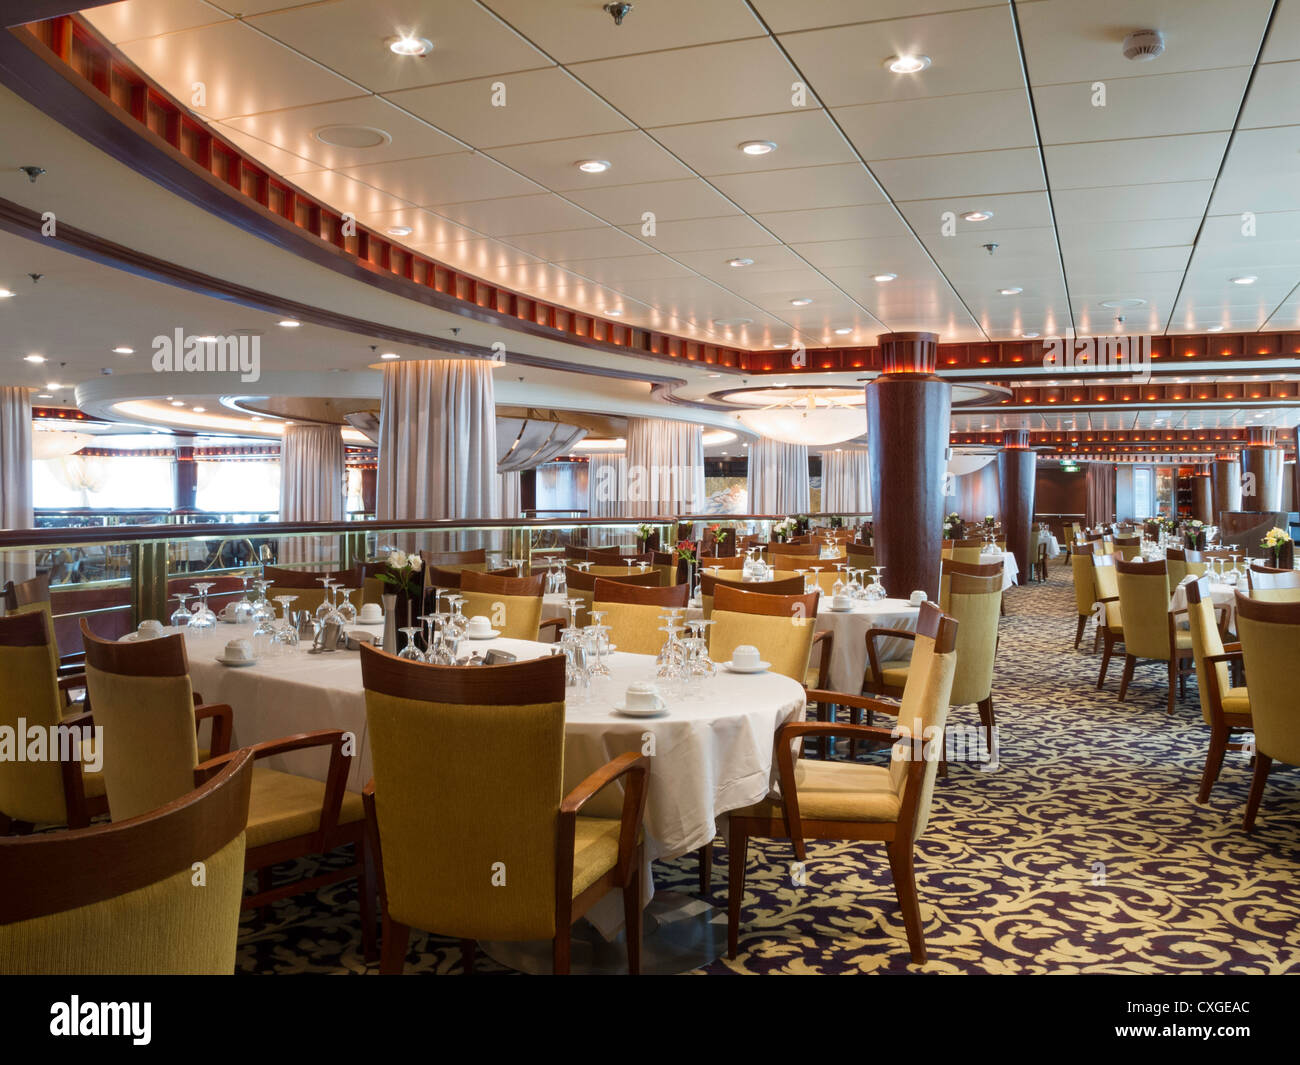 Formal Dining Room On Radiance Of The Seas Cruise Ship